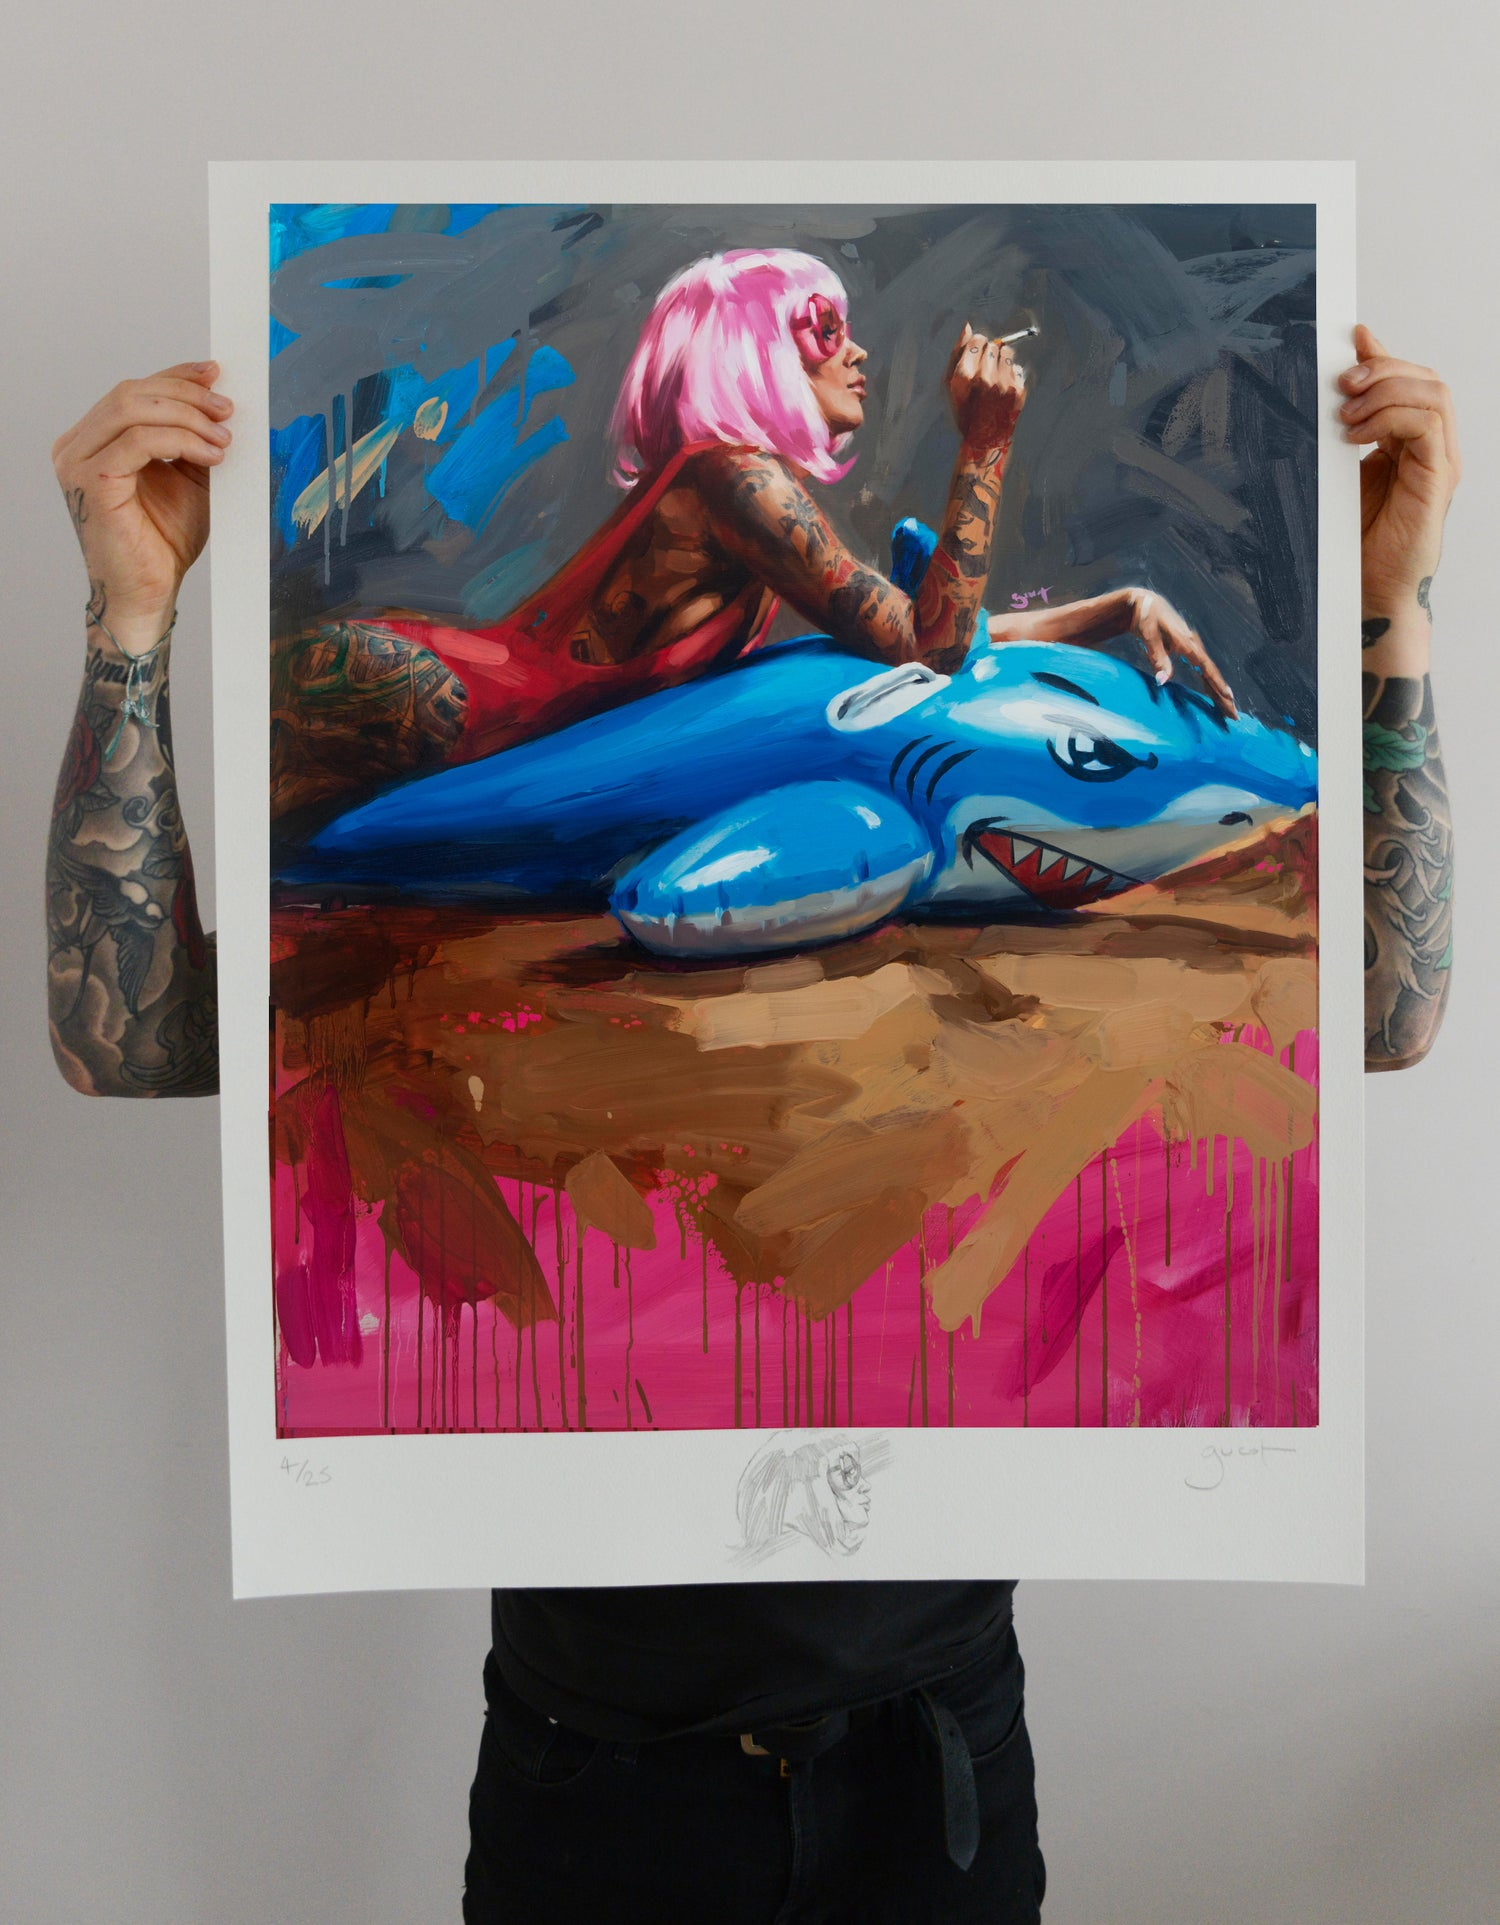 Image of Extremely Limited Special Editon 'SHARK II' Giclee Print with Original Drawing